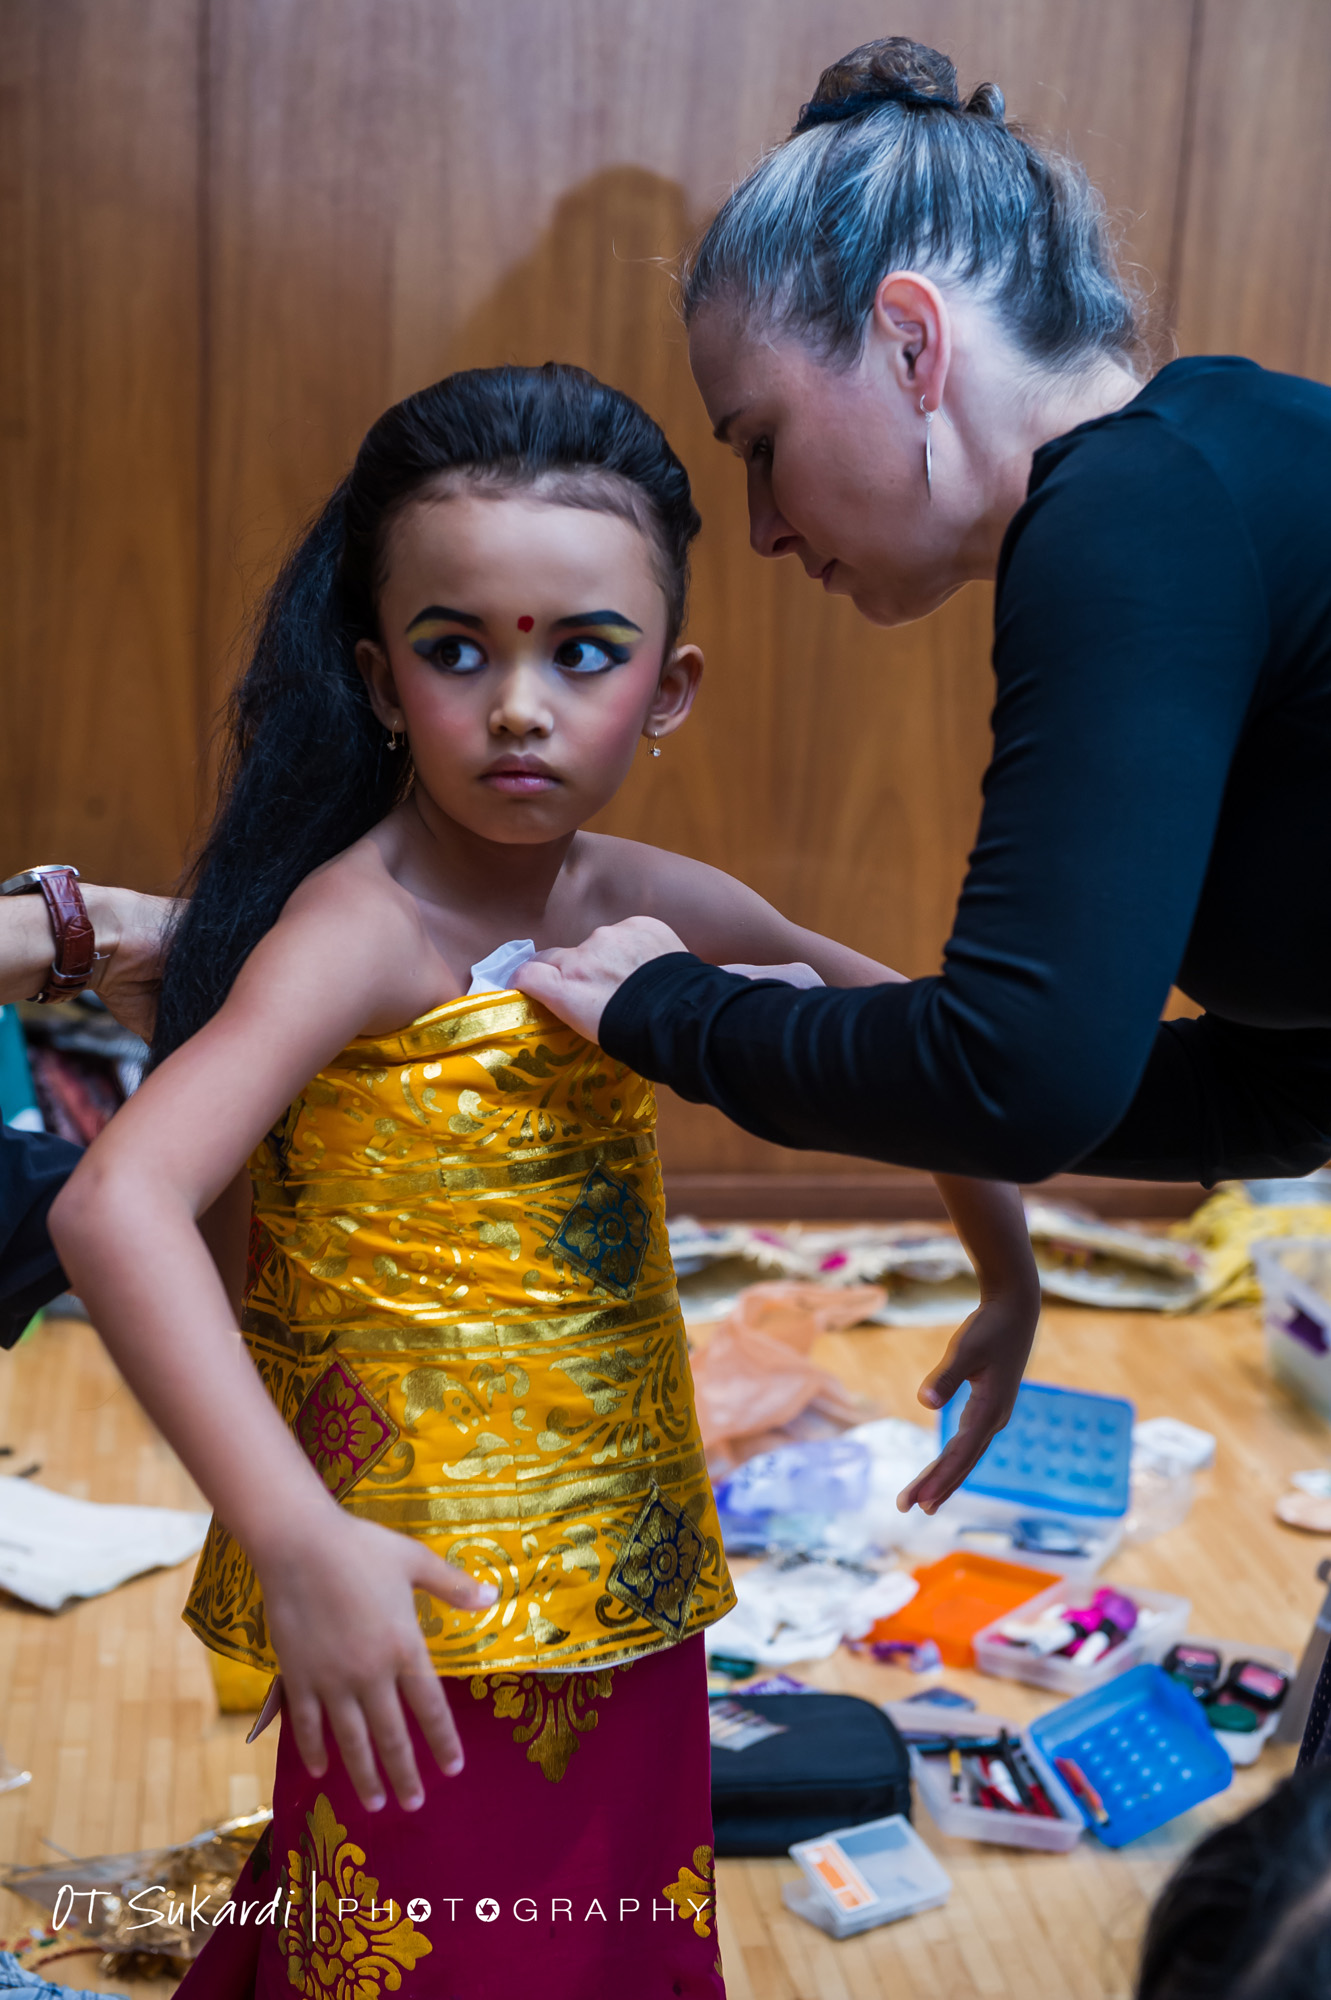 Young performer being wrapped in gold sash